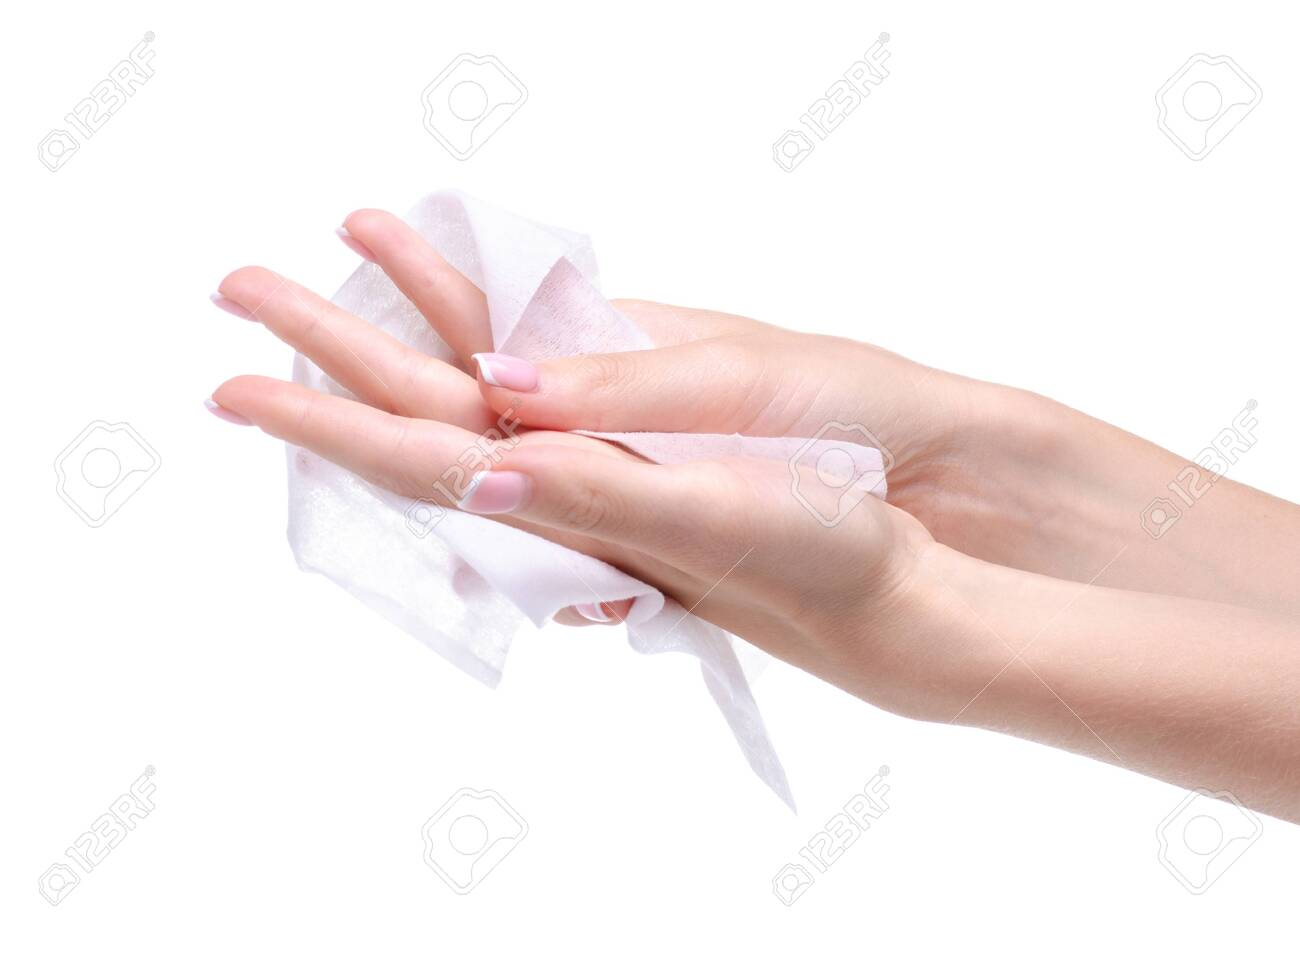 Female hand wet wipe on white background isolation, top view - 143341407